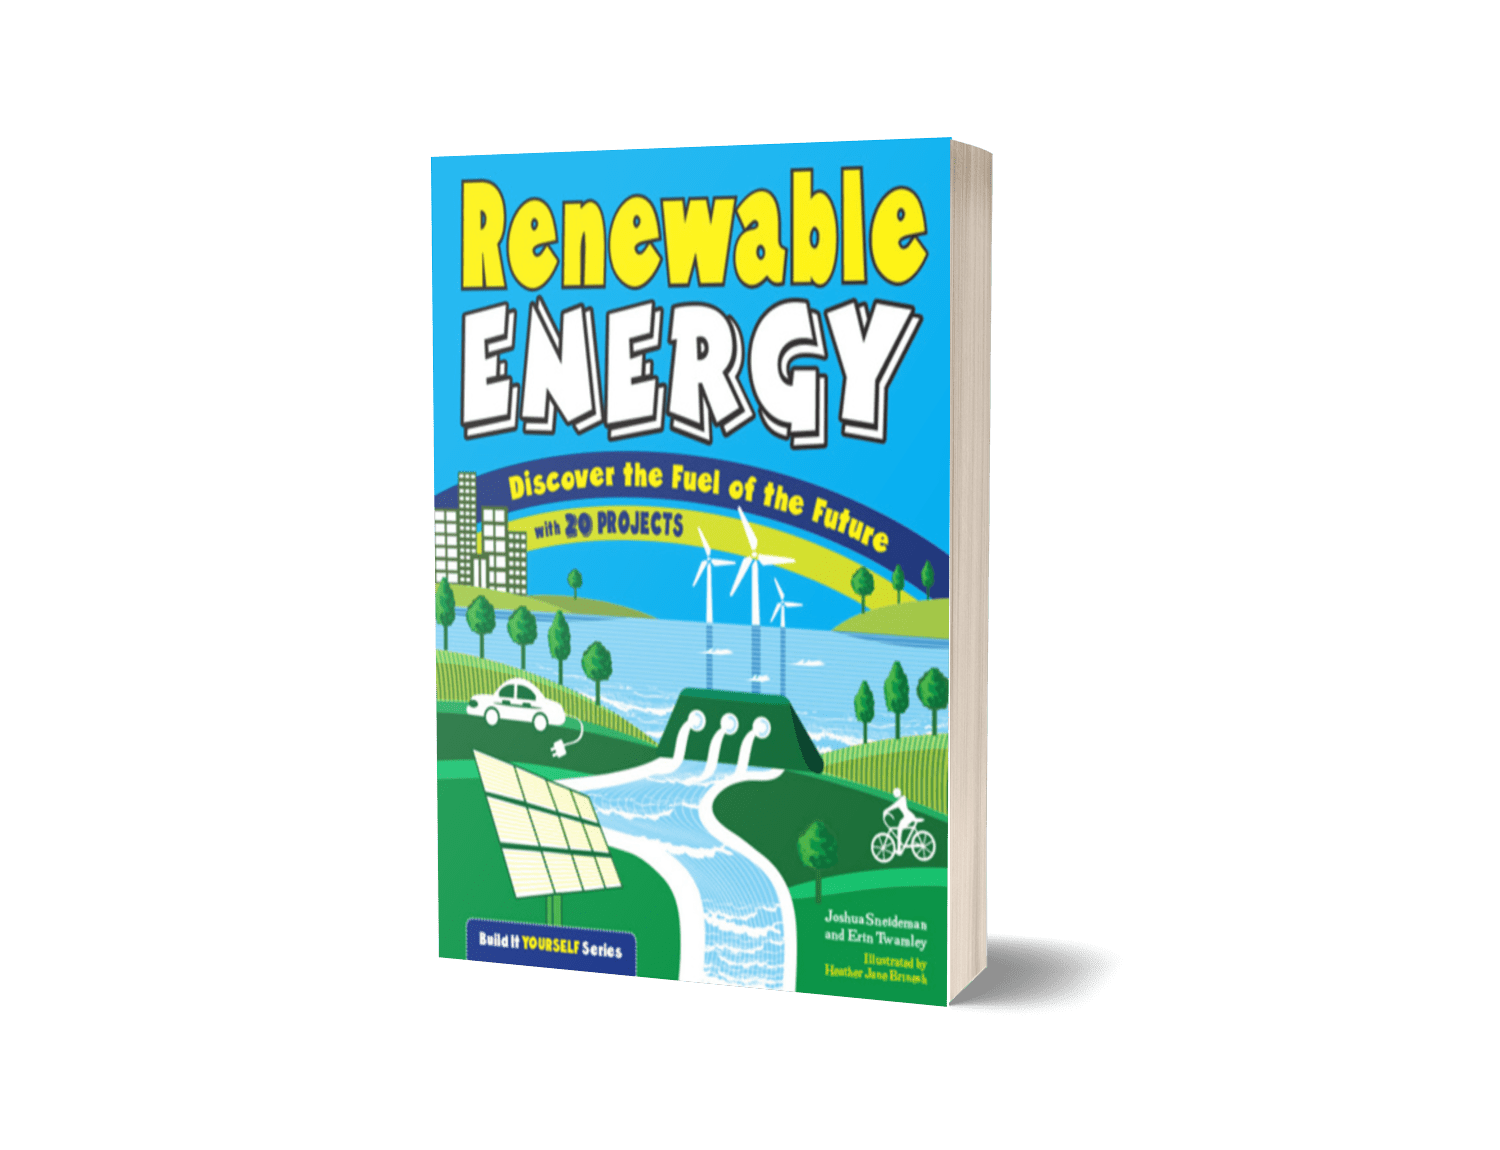 Renewable Energy: Discover the Fuel of the Future